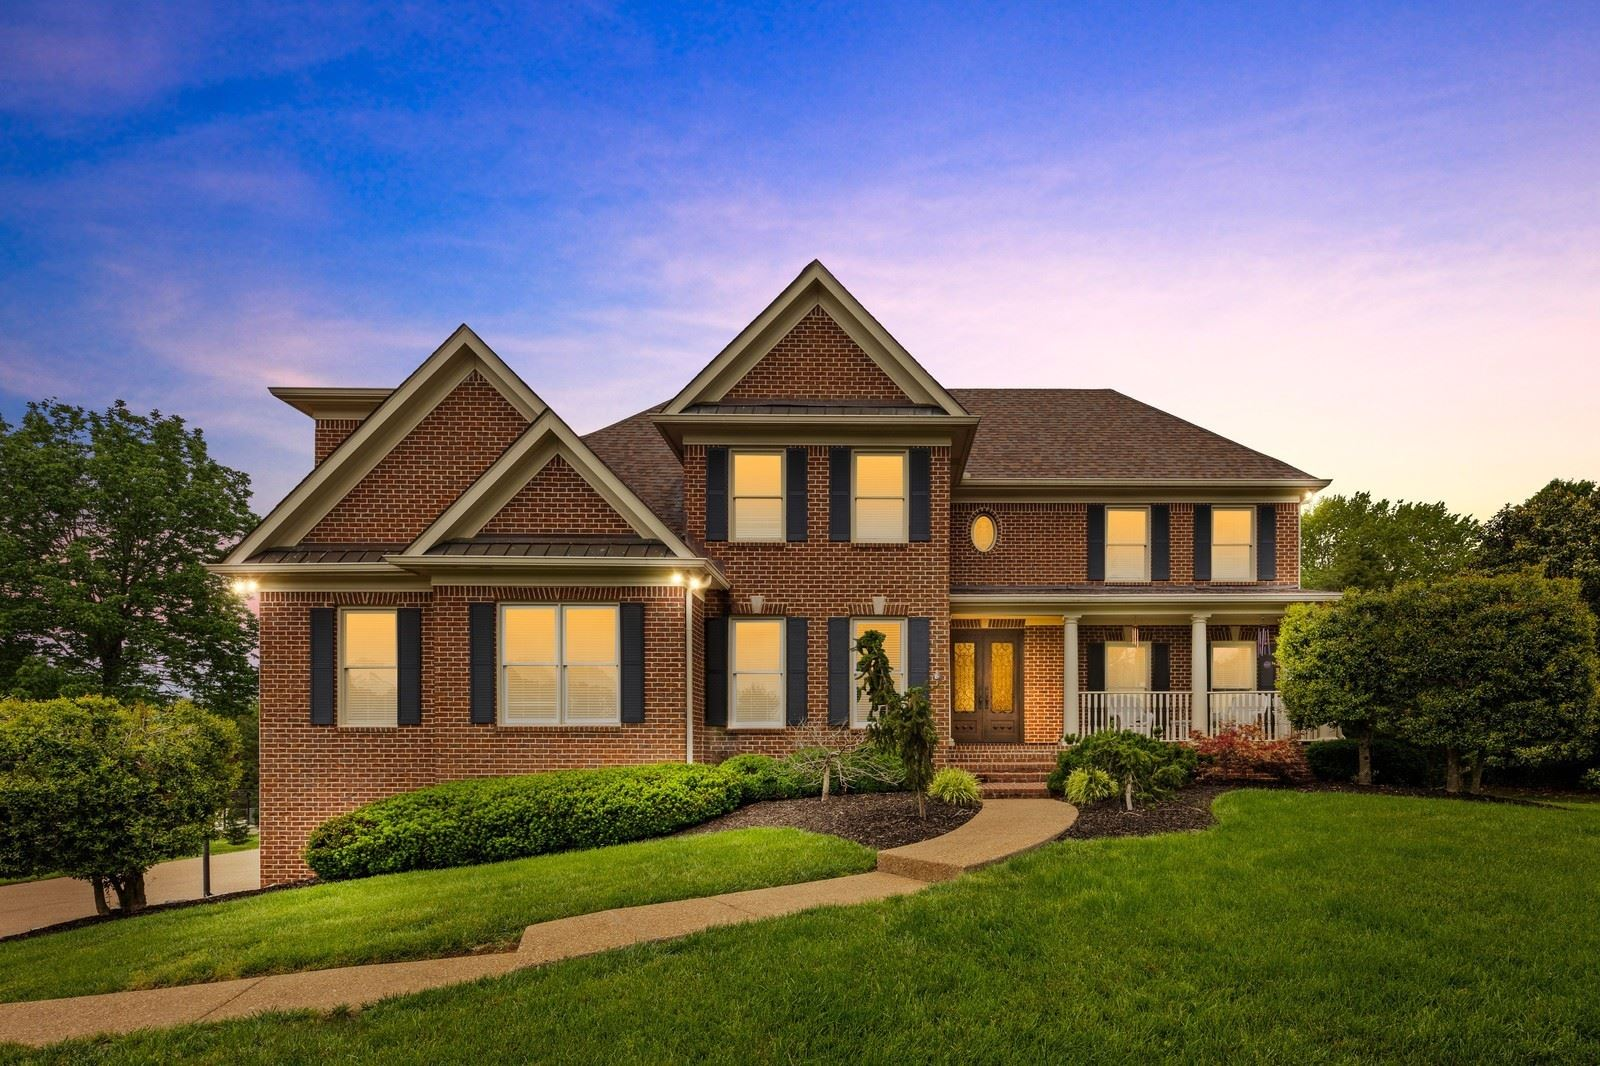 Photo of 9435 Weatherly Dr, Brentwood, TN 37027 (MLS # 2185839)